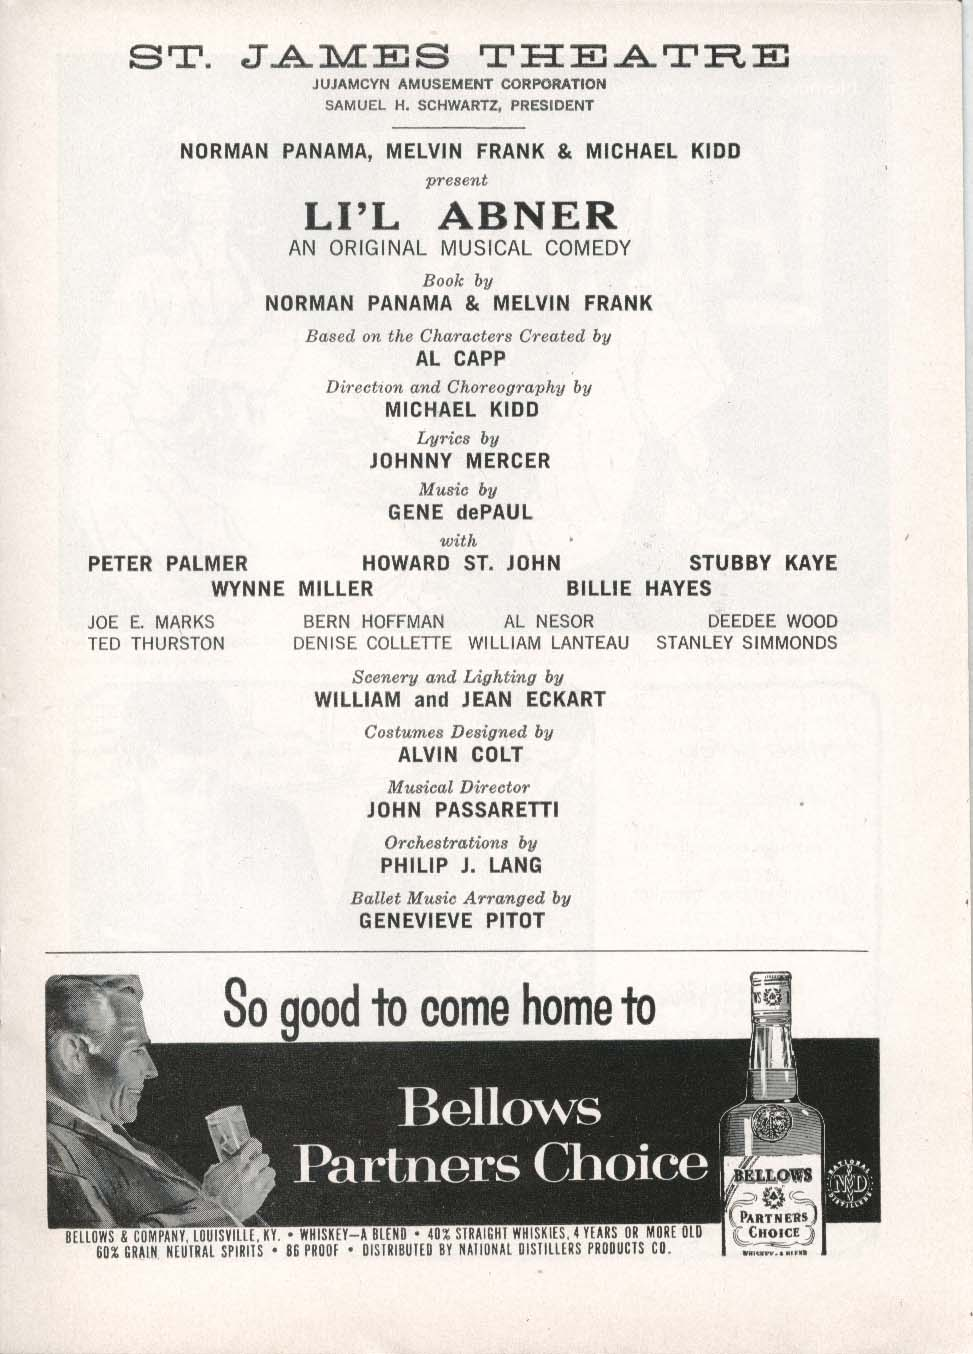 Image for Li'l Abner Playbill 5/26/58 Peter Palmer Howard St John Stubby Kaye St James